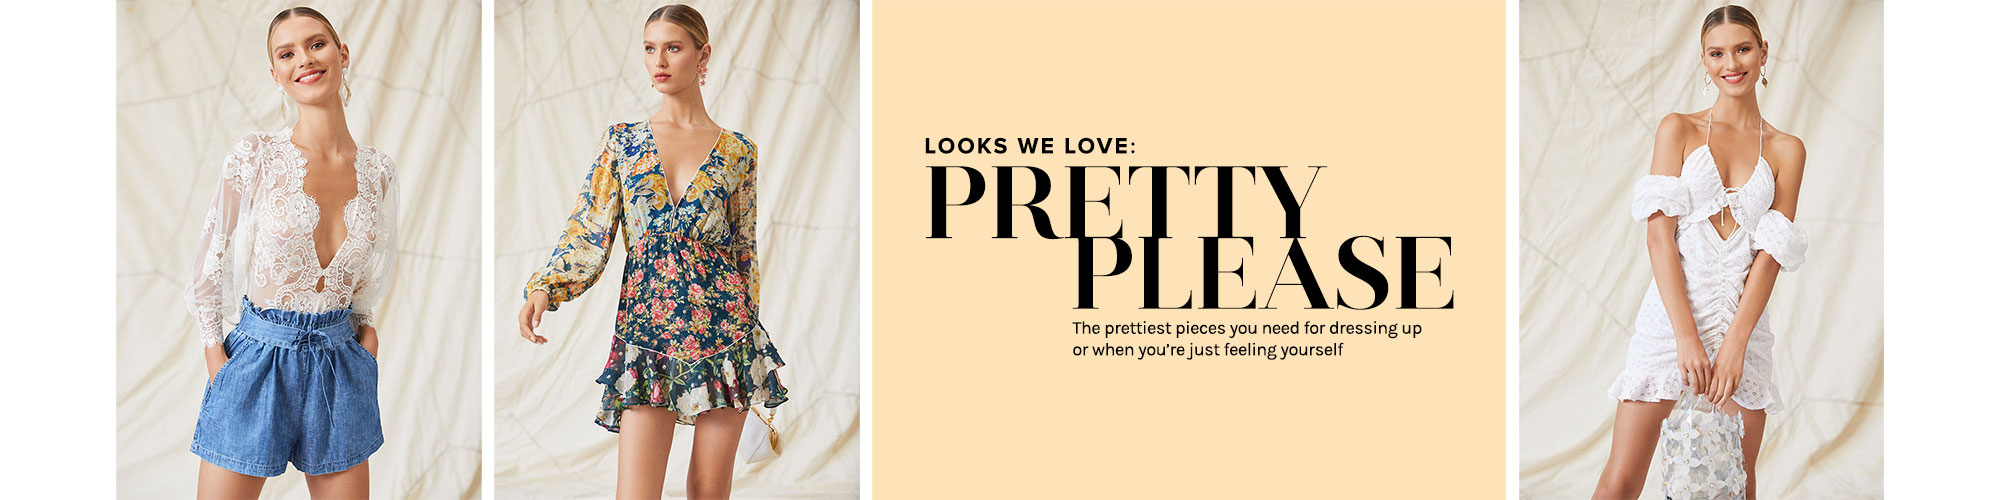 5073665c2 Looks We Love: Pretty Please. The prettiest pieces you need for dressing up  or · SHOP THE COLLECTION